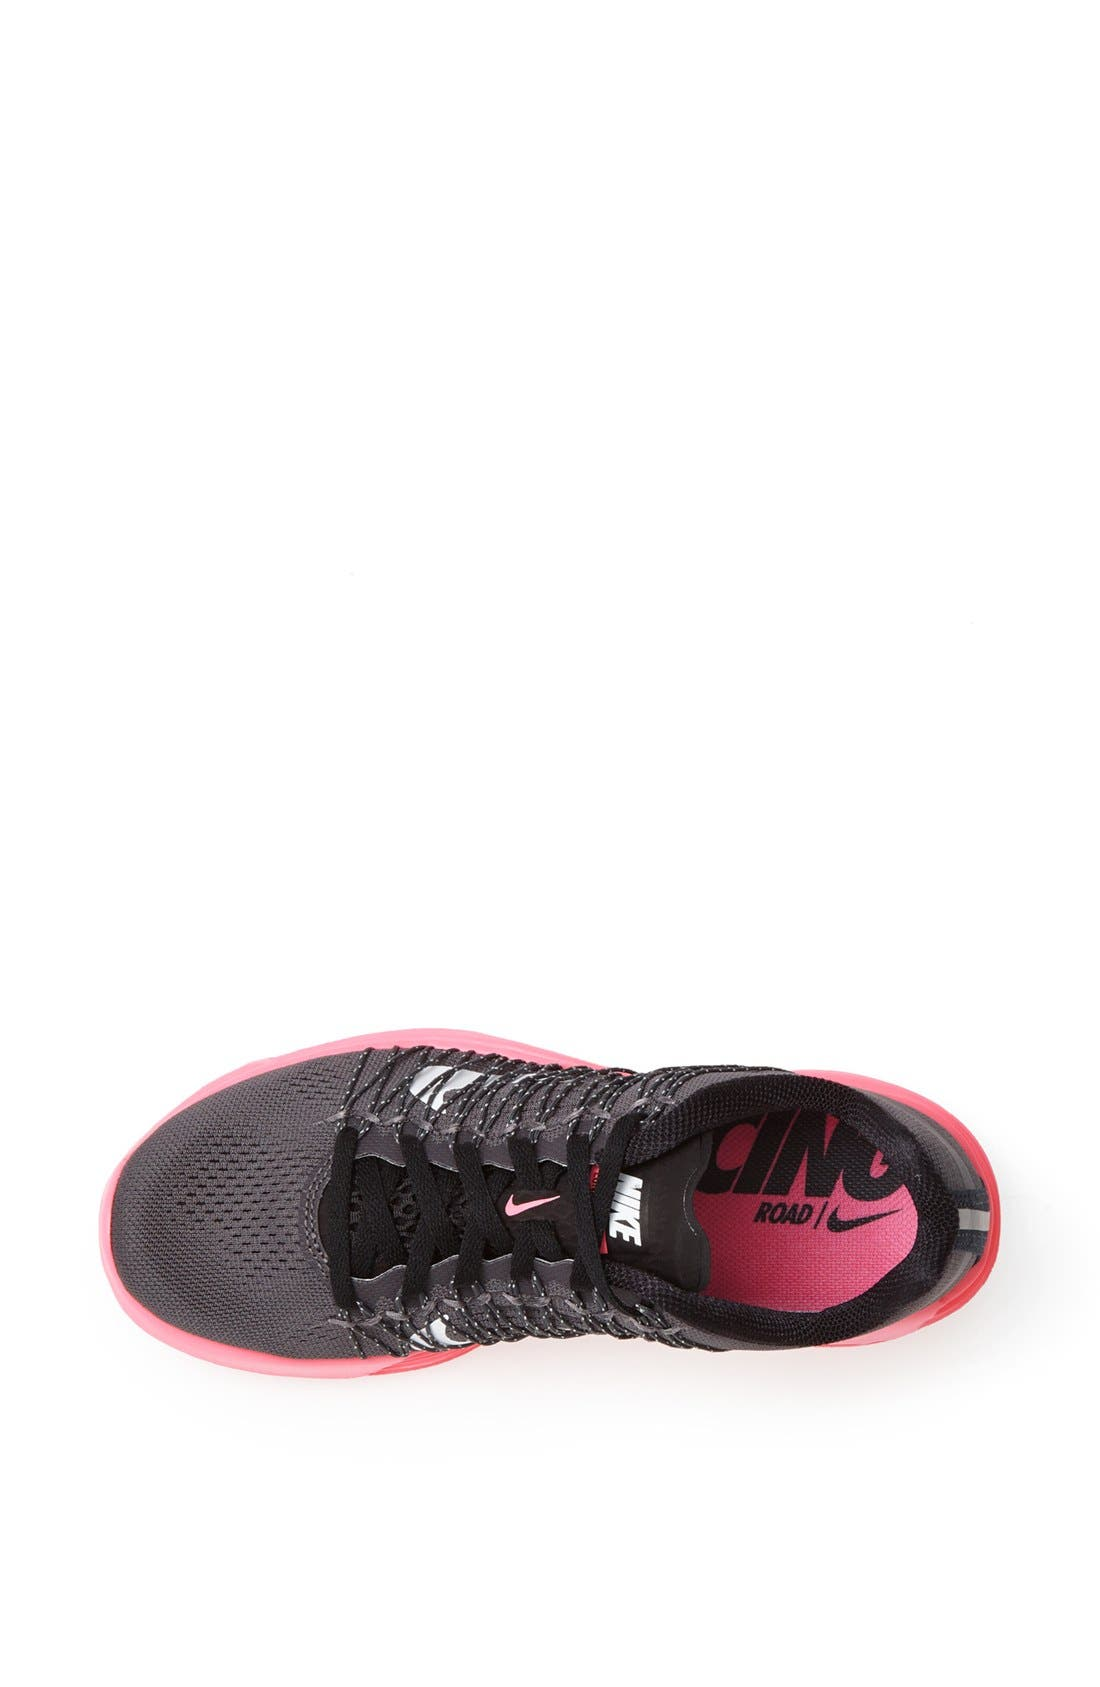 'Lunaracer+ 3' Running Shoe,                             Alternate thumbnail 4, color,                             016